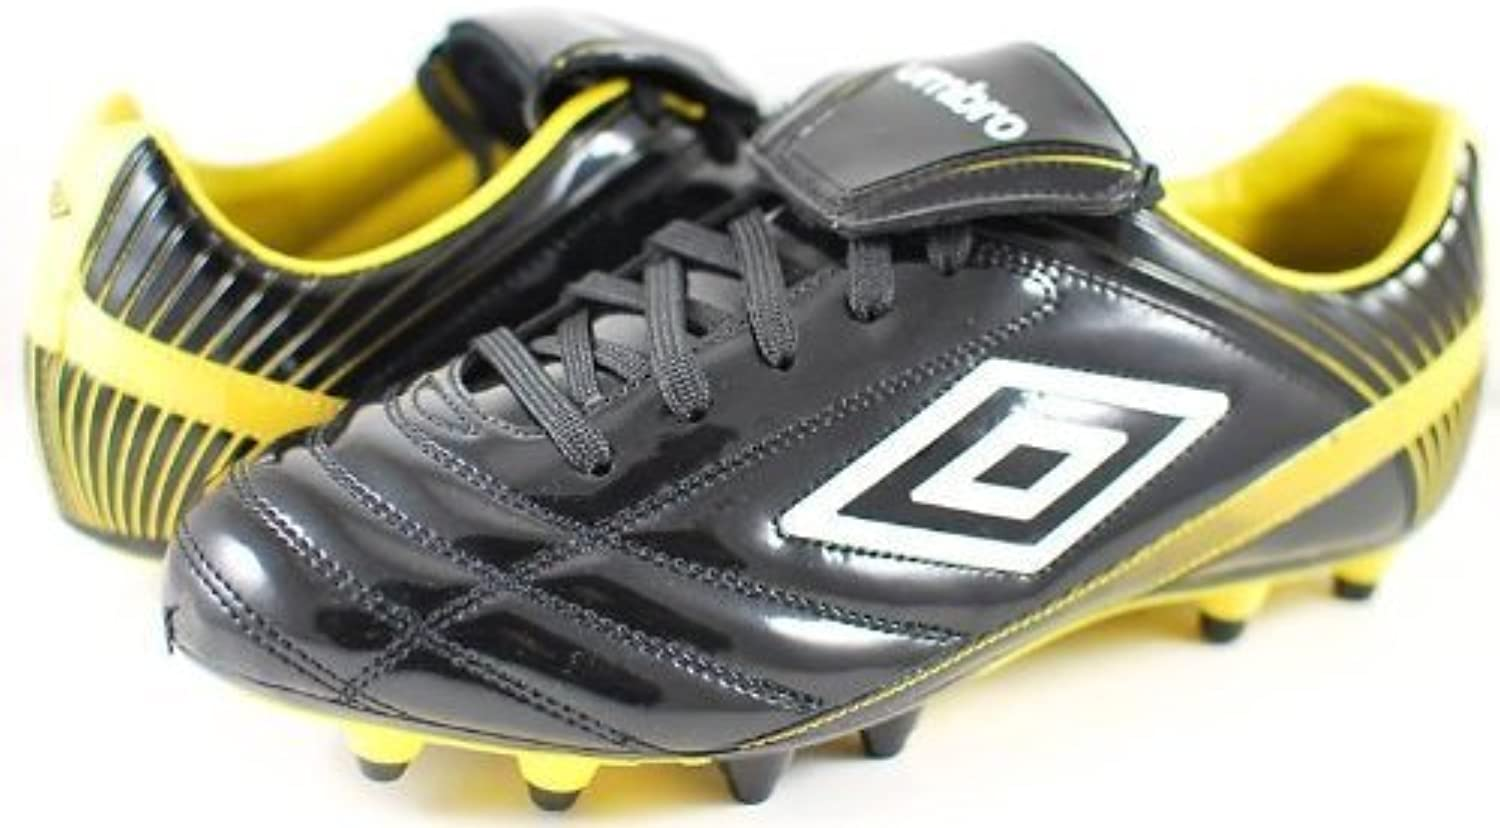 Umbro Lancing A HG Soccer Cleats